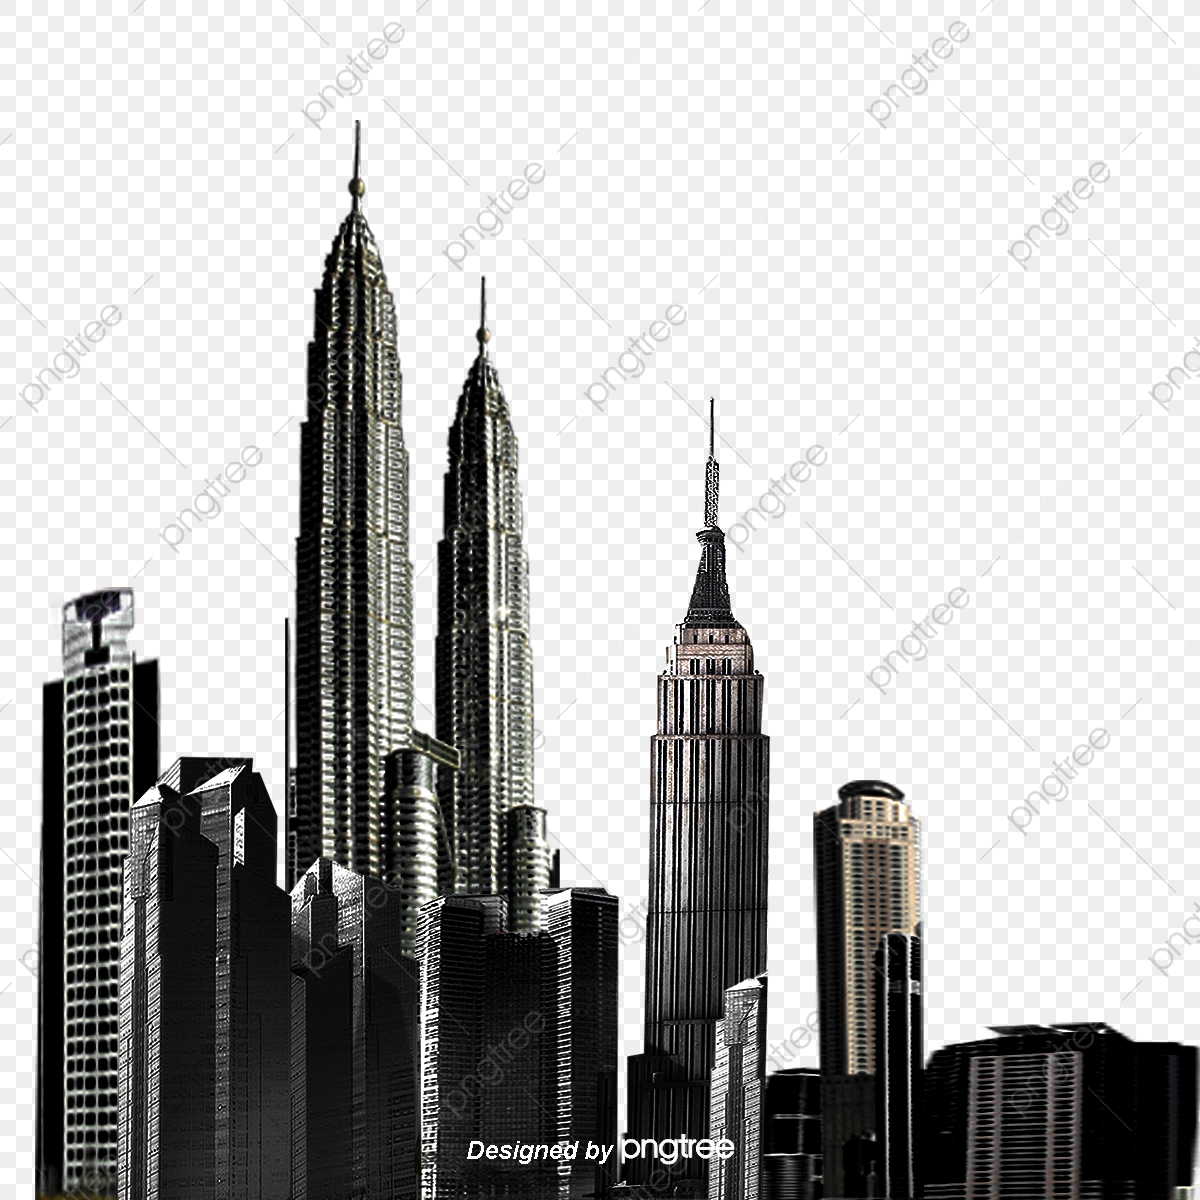 city png image city building vector material, building, city vector